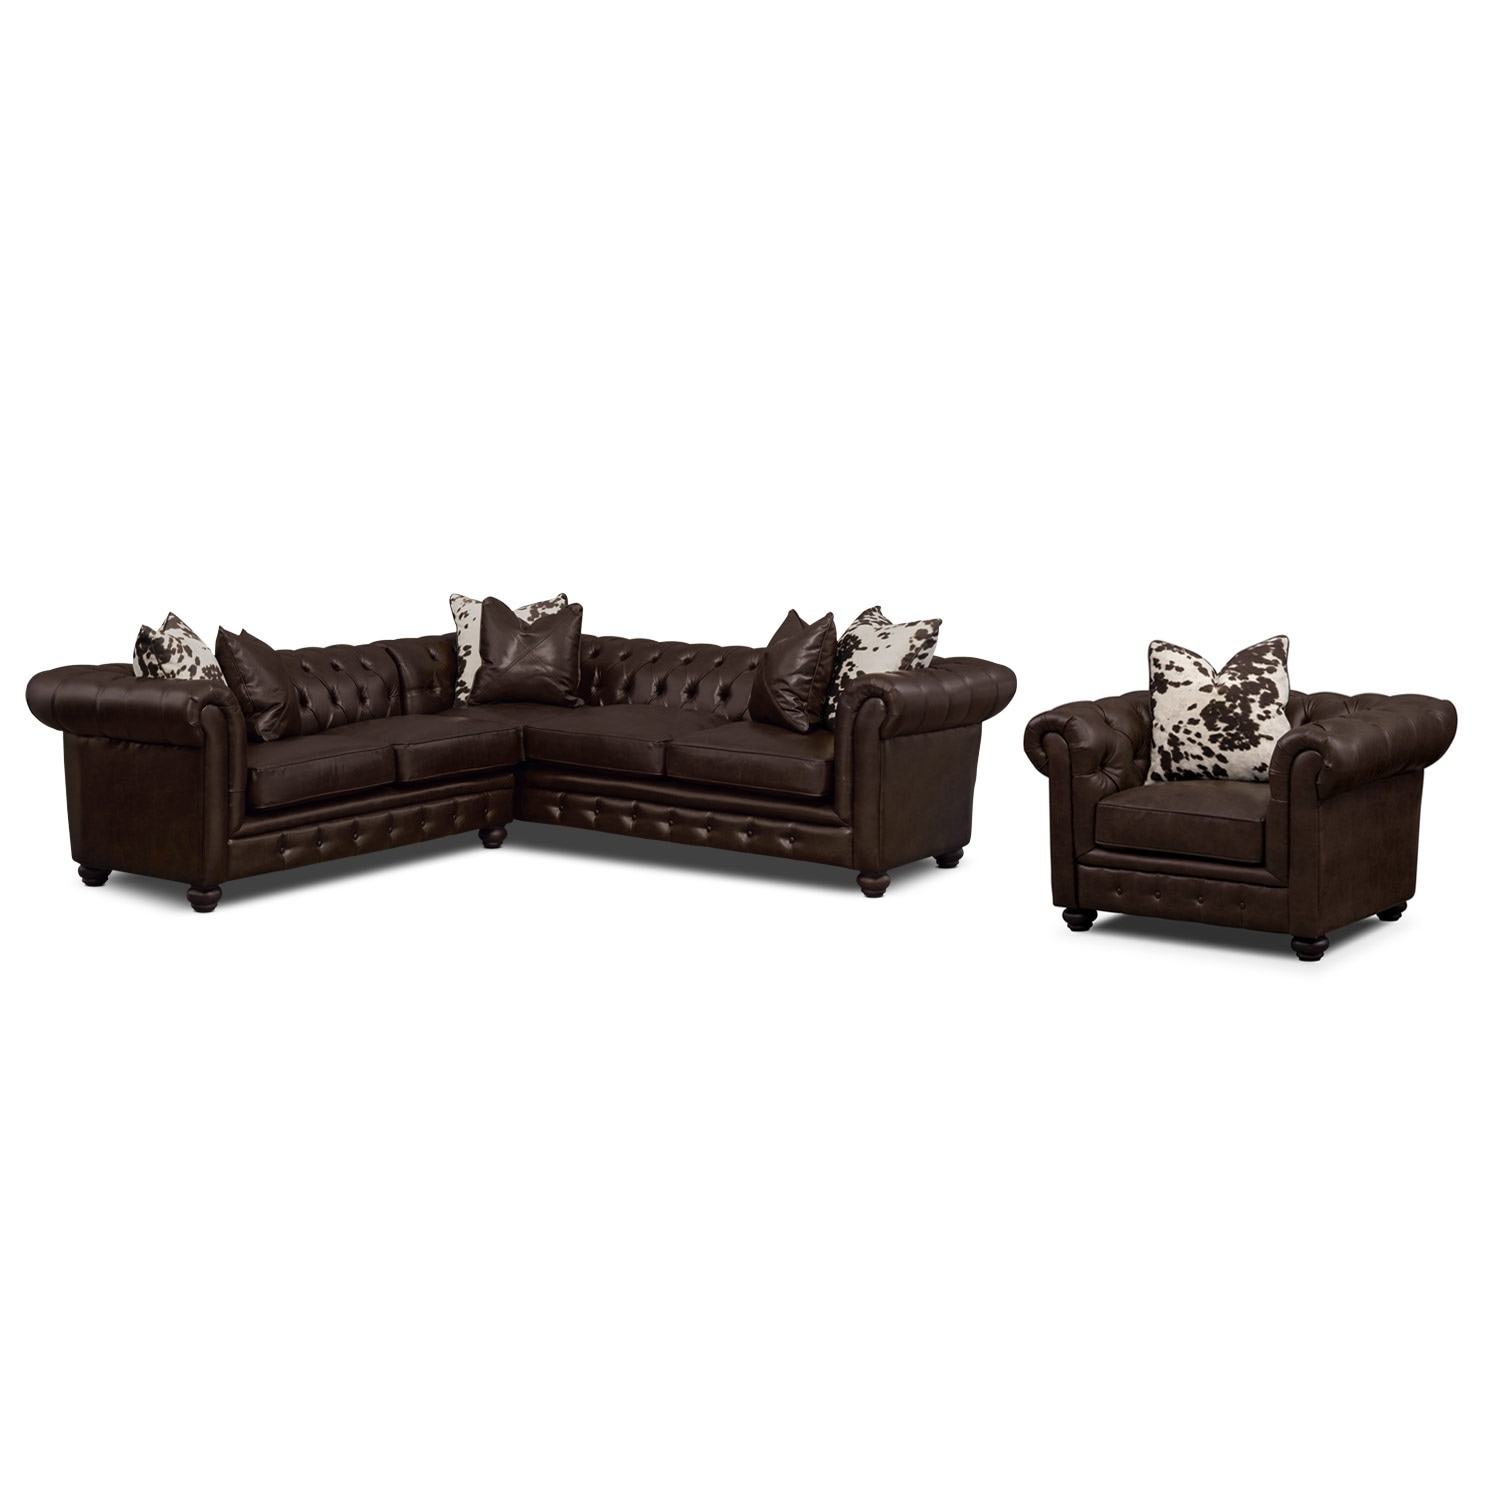 Madeline 2-Piece Sectional and Chair - Chocolate